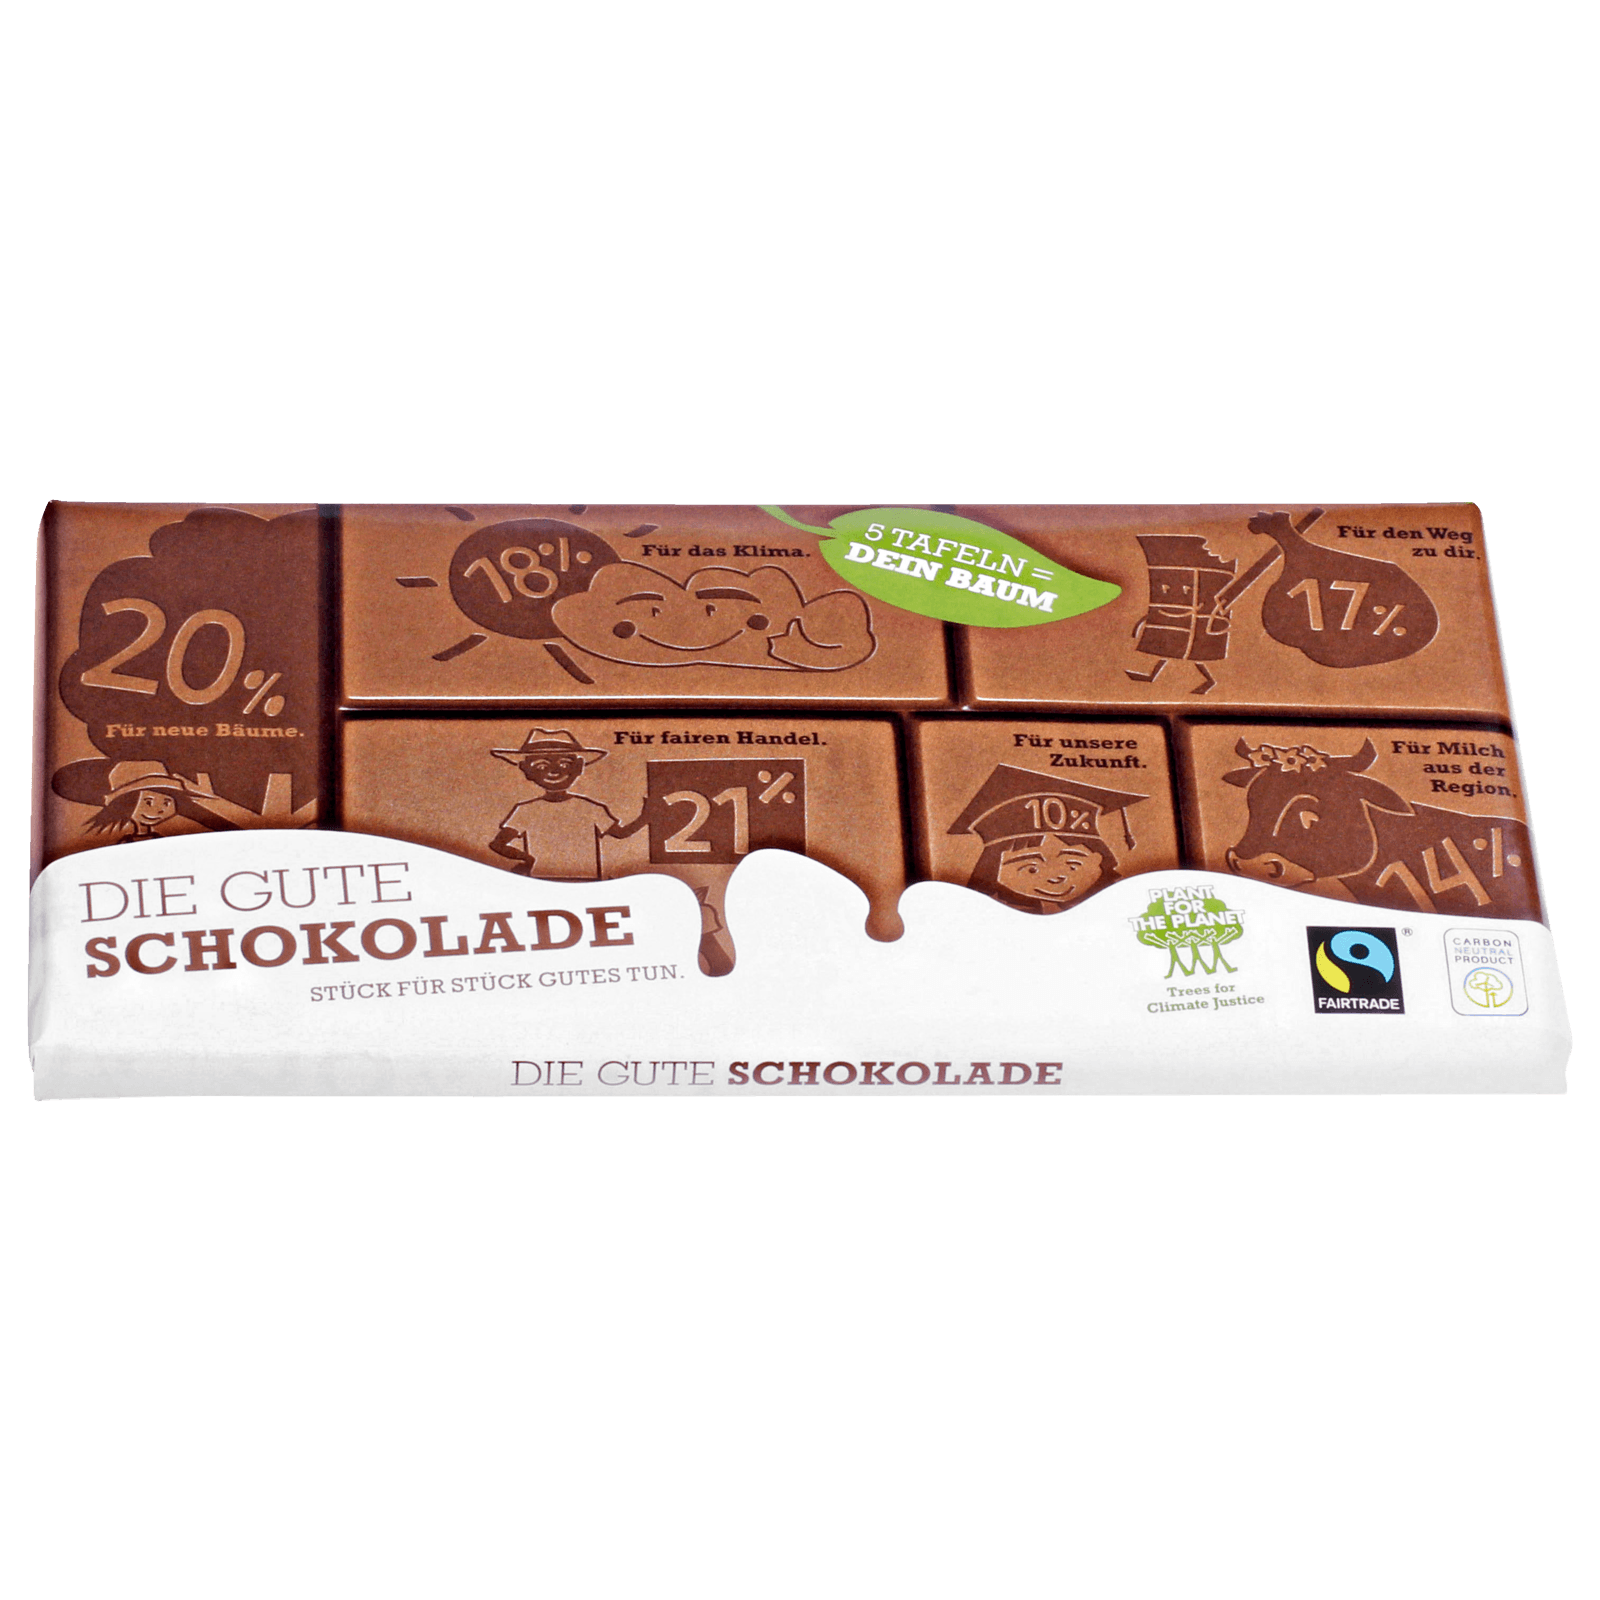 Plant for the Planet Die gute Schokolade 100g bei REWE